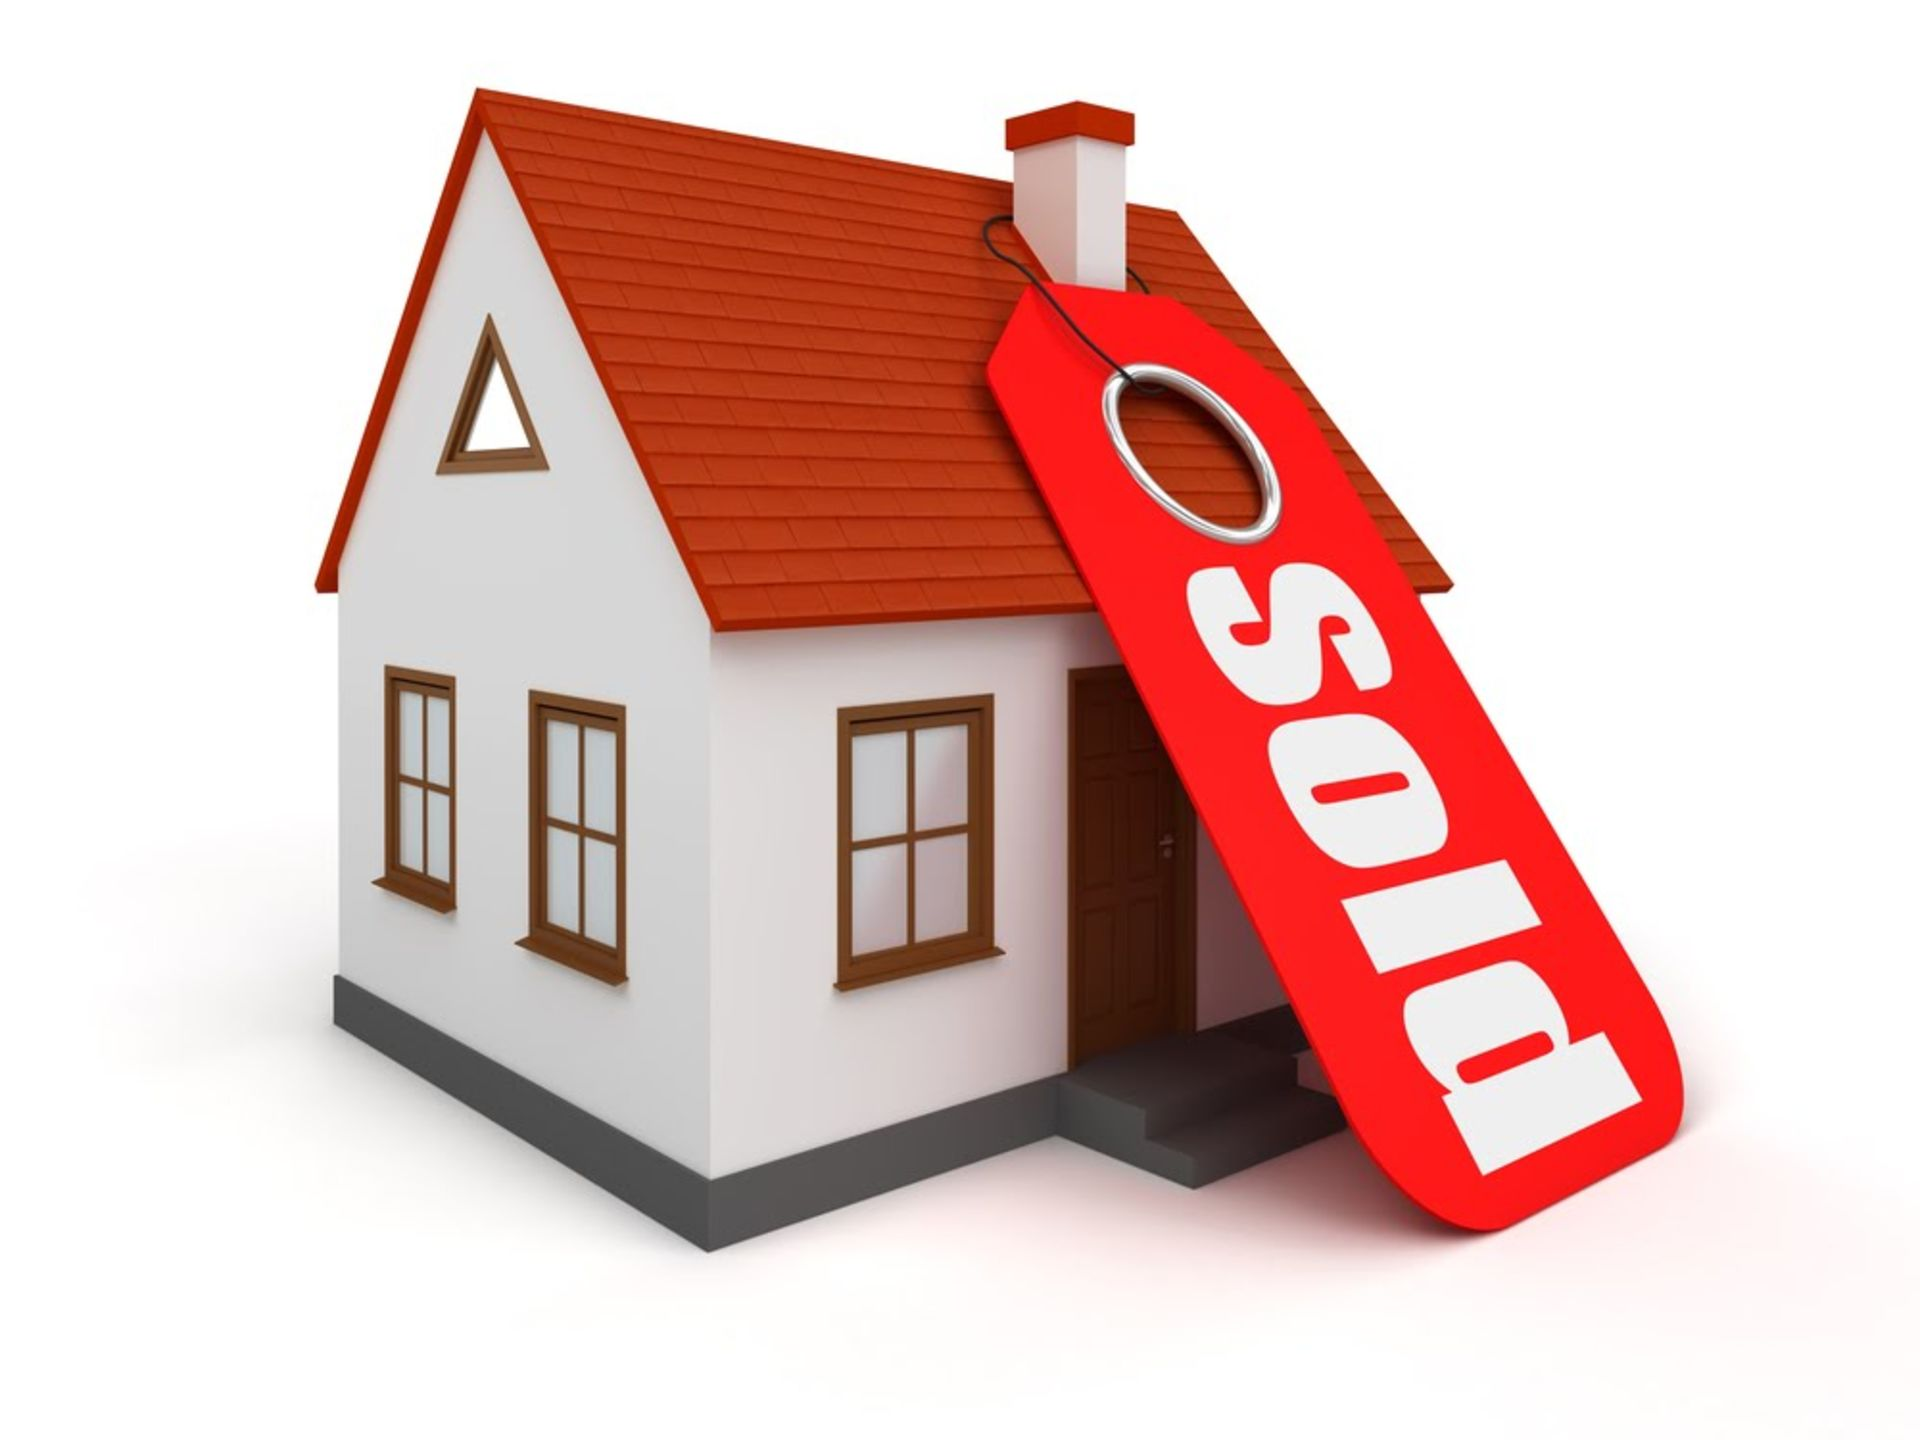 Real Estate – Do I buy first or sell first?